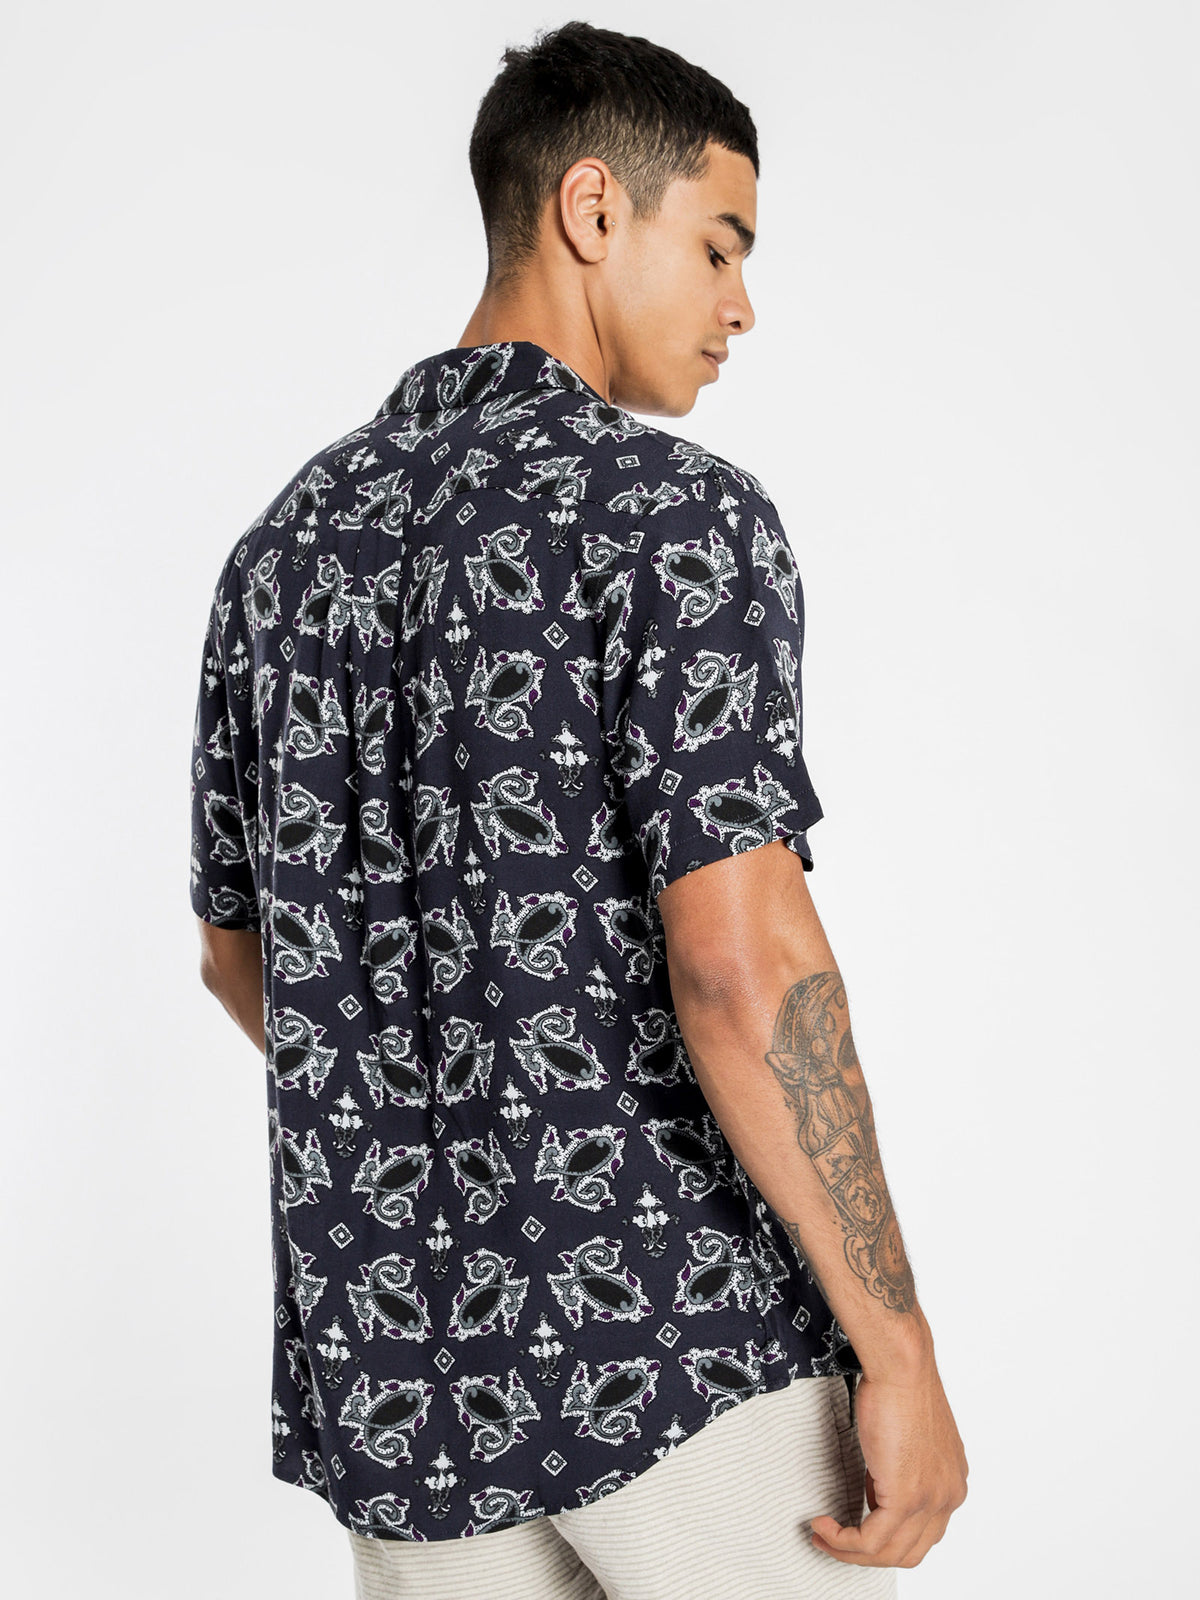 Altona Short Sleeve Shirt in Navy Paisley